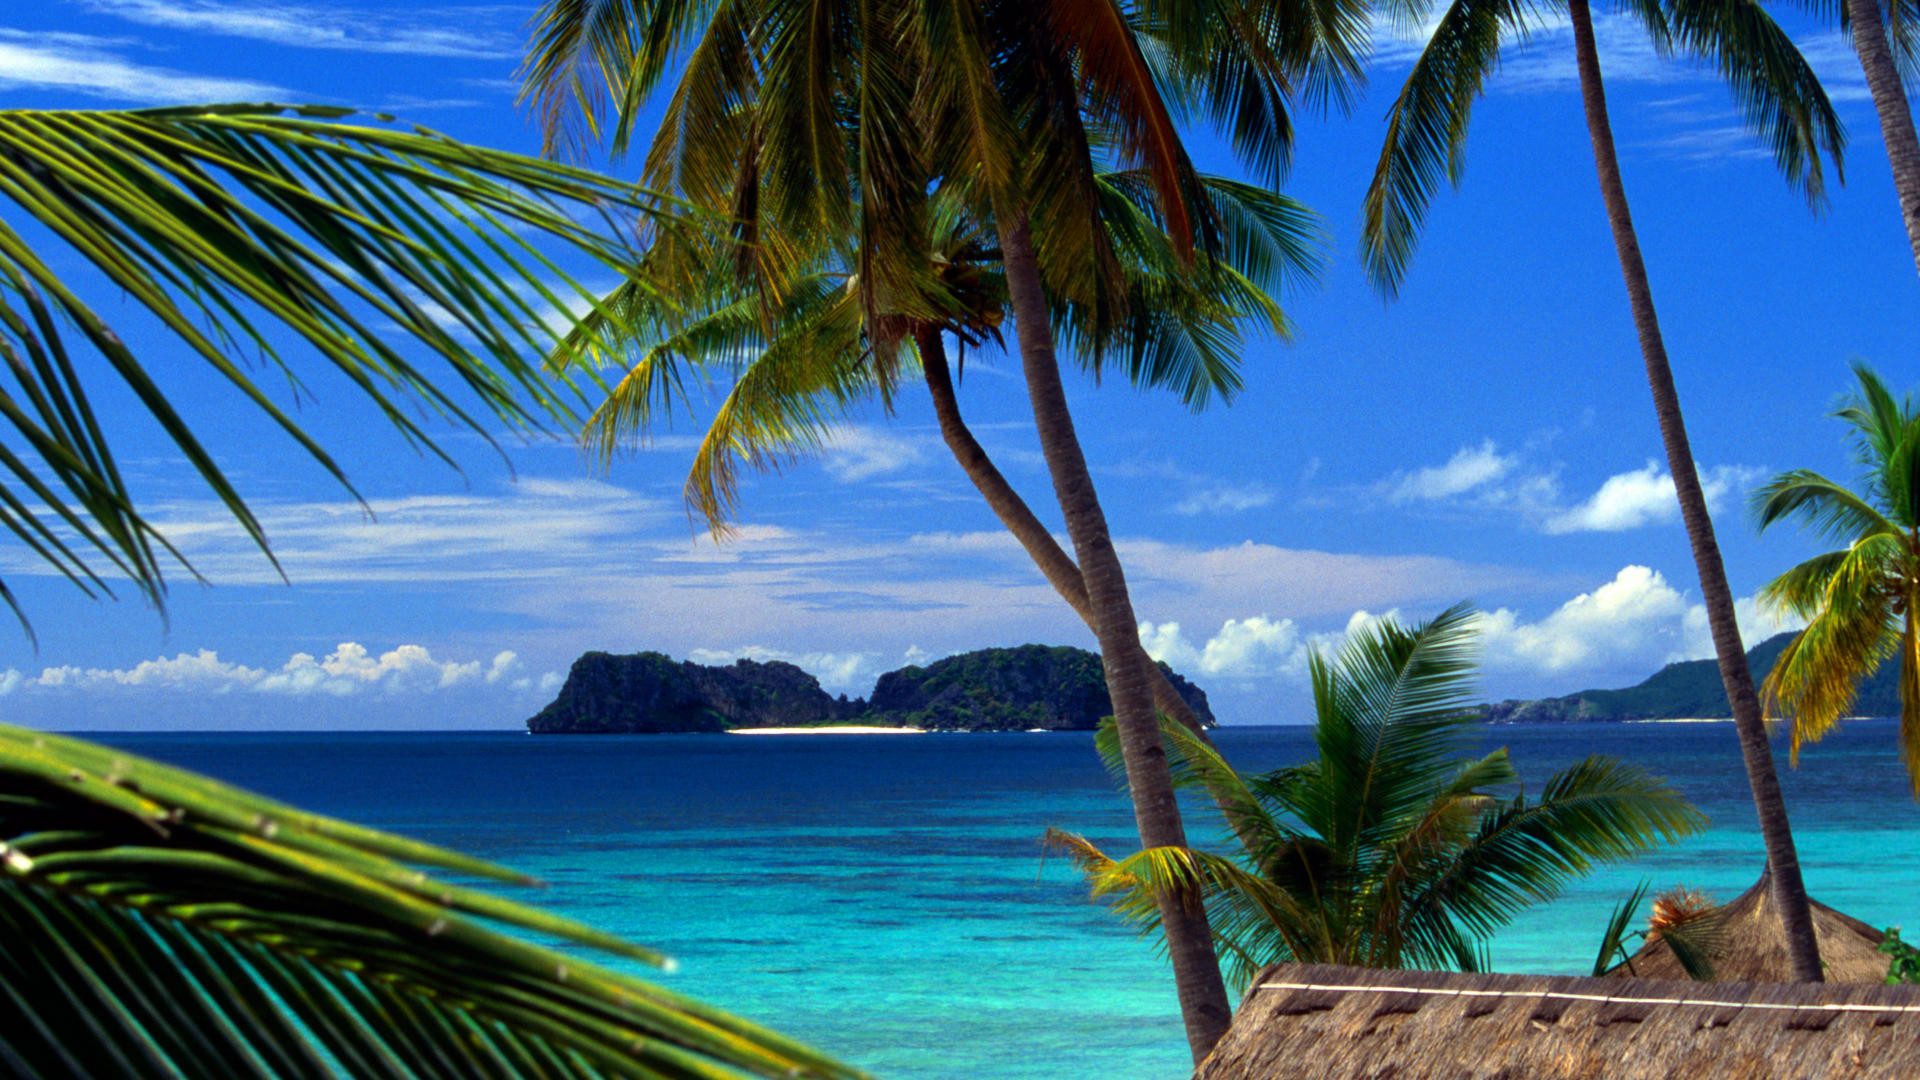 Res: 1920x1080, Backgrounds, wallpaper, philippines, palawan, pangulasian, island .